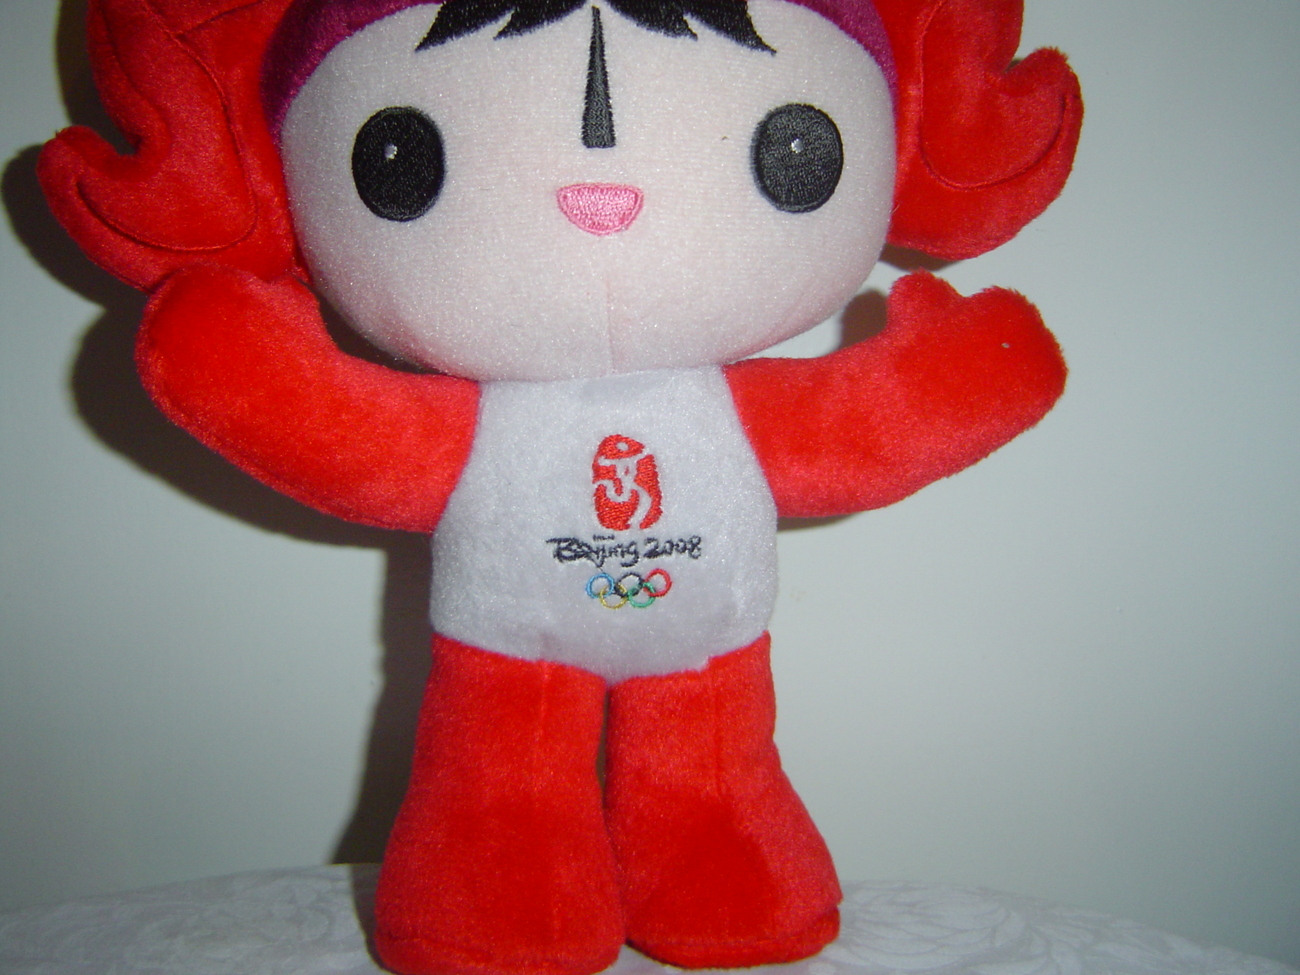 Beijing Summer Olympics Mascot Plush Huanhuan the Olympic Flame 14 in.